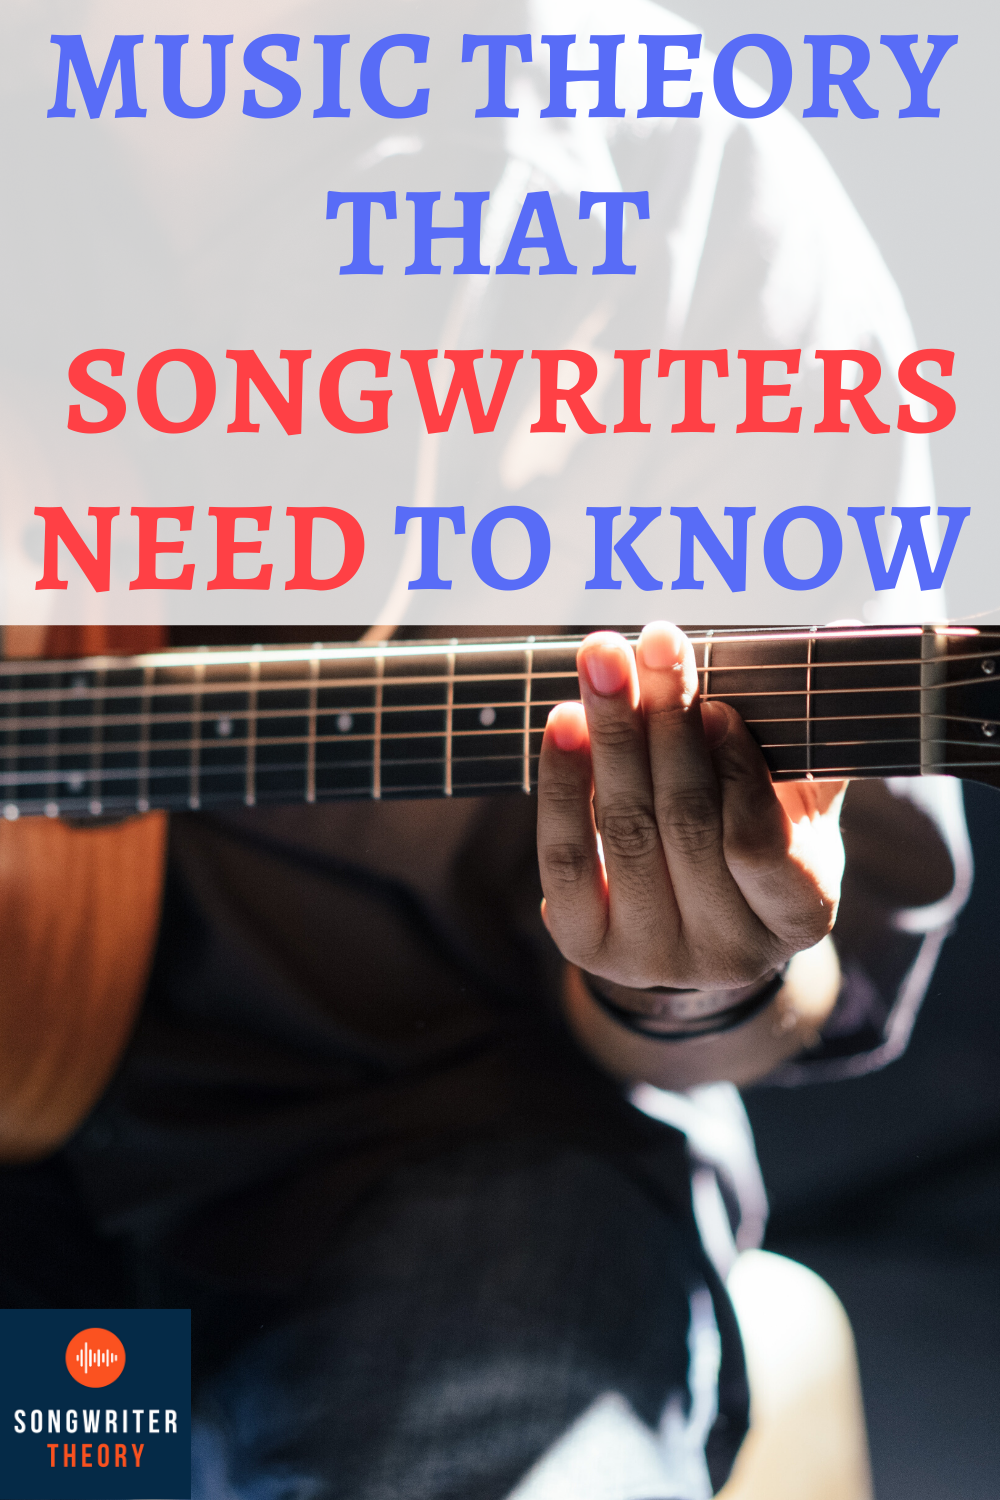 Pin on Songwriting Tips